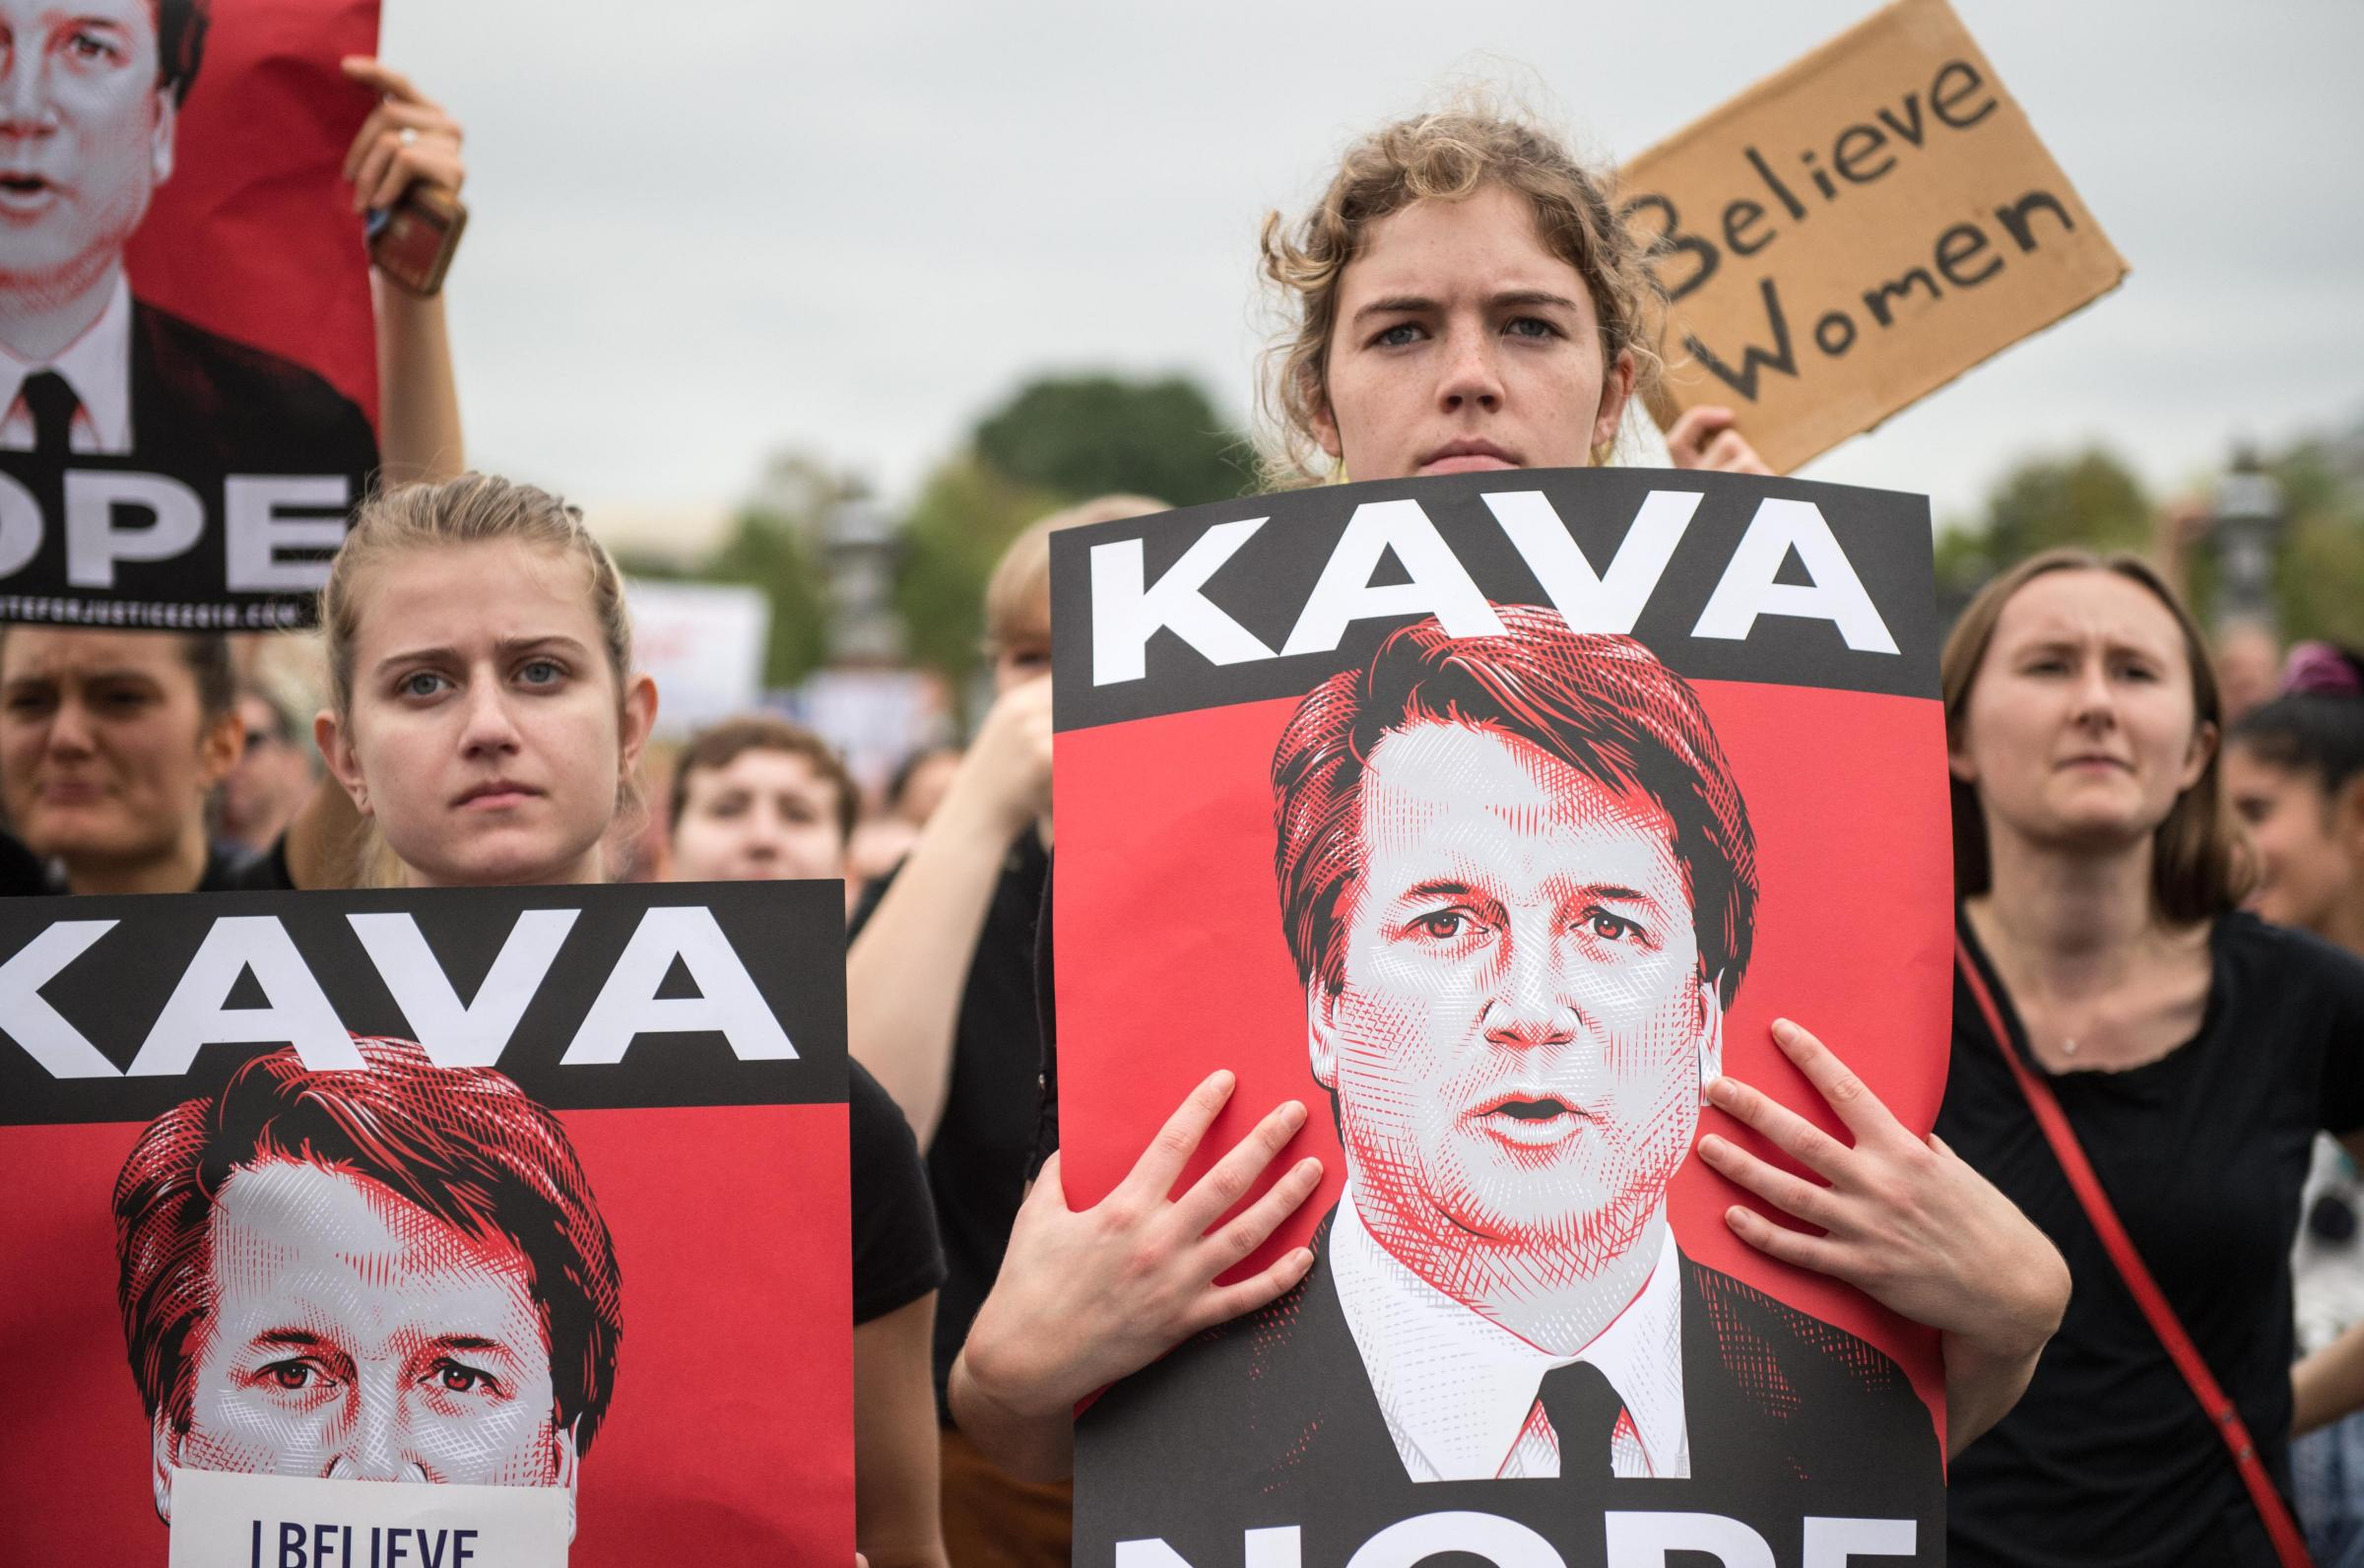 Women demonstrators protest against the appointment of Supreme Court nominee Brett Kavanaugh at the US Capitol in Washington DC, on October 6, 2018